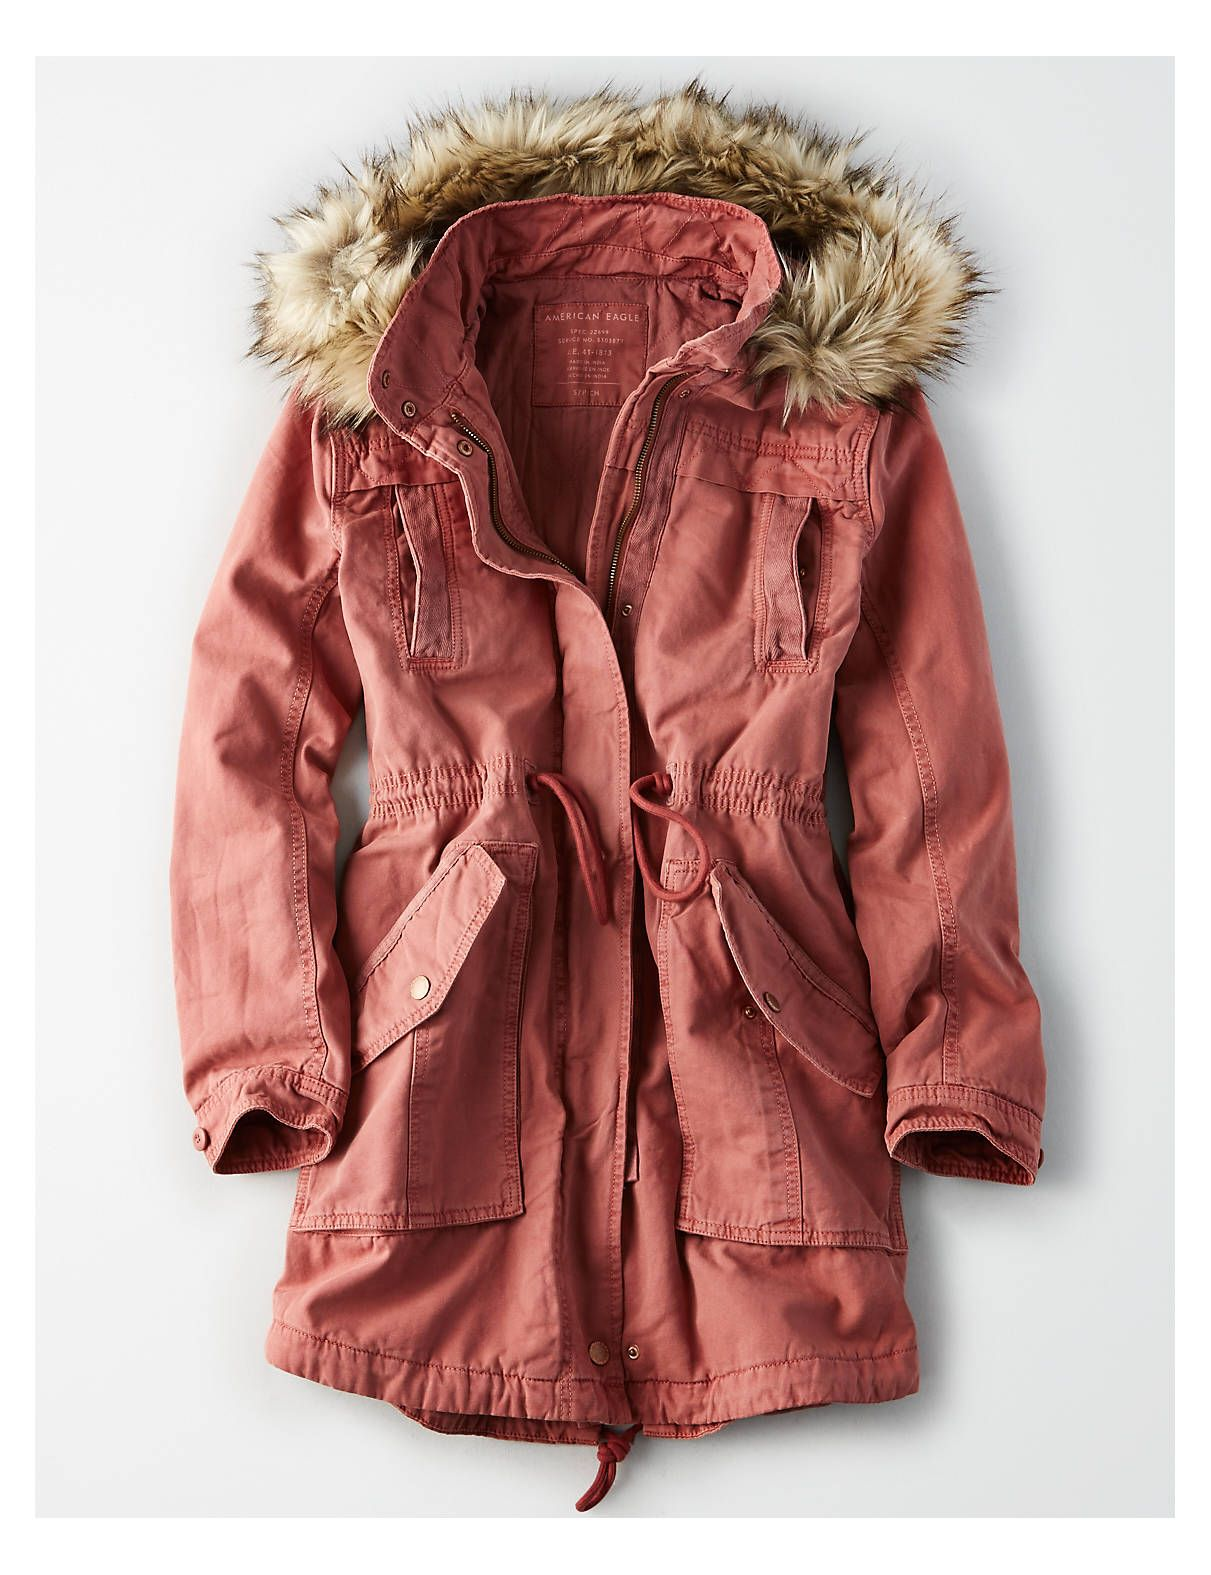 81c95ed2fc3 You've been warmed. Stay cozy in any conditions with a fur collar and